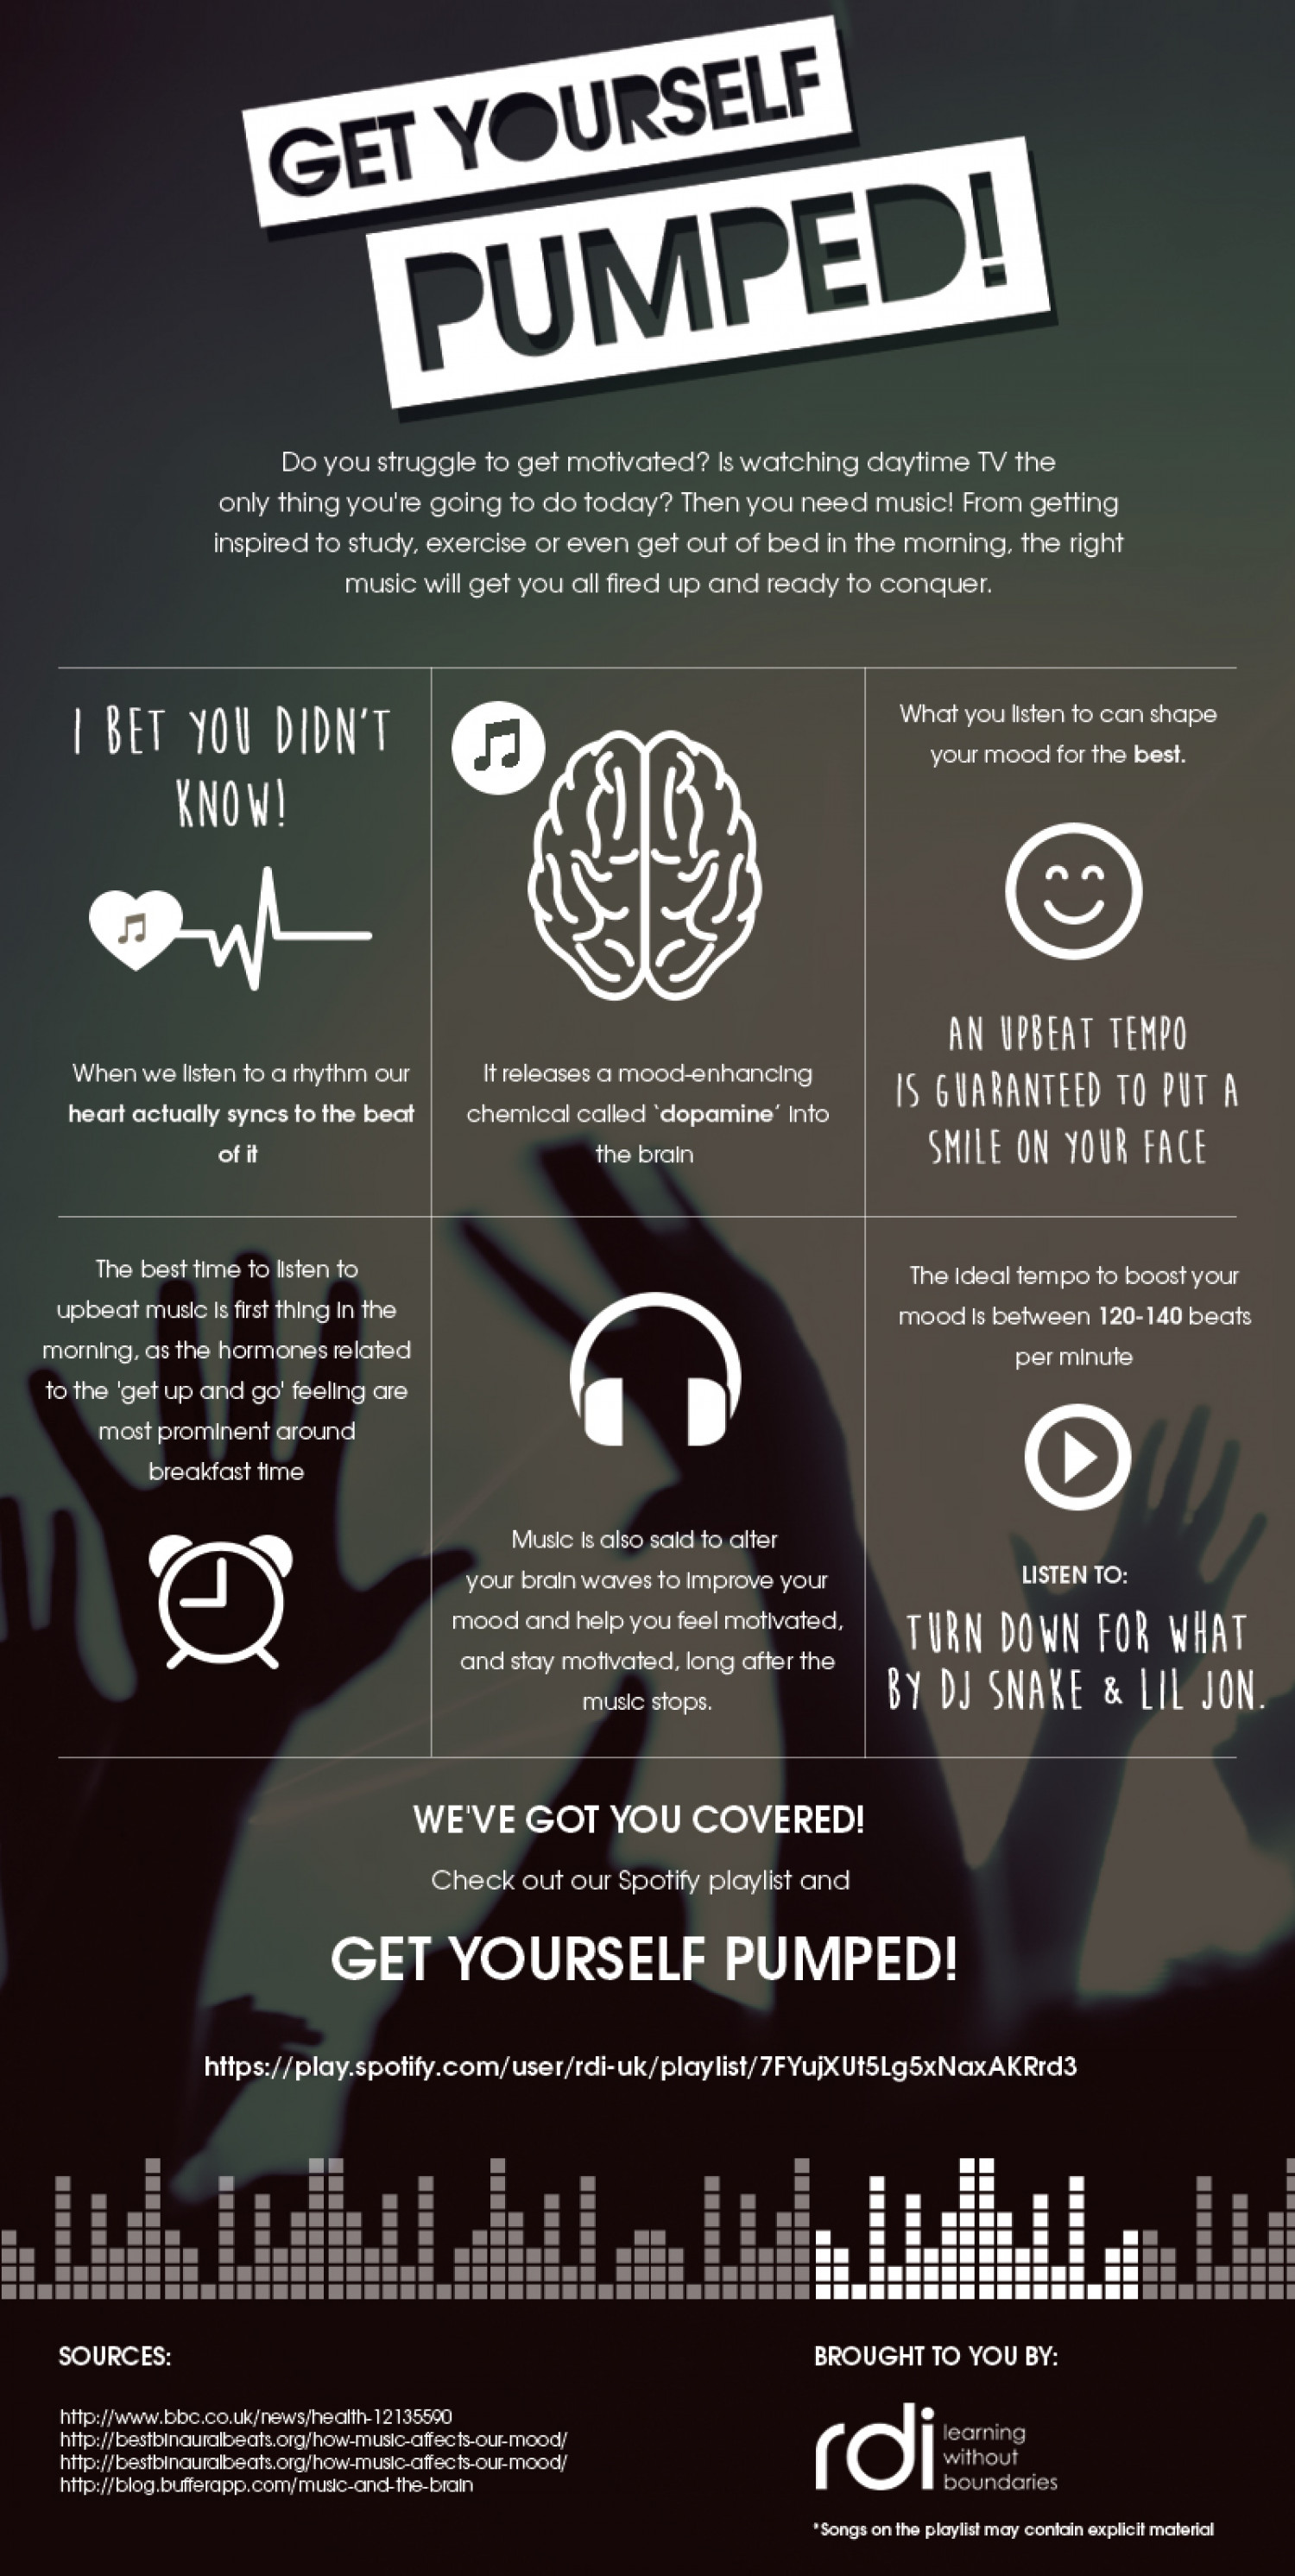 does music affect your mood Whether or not hard scientific proof exists, and even if we can only count on the placebo effects of music, the indirect effects of music, or anecdotal evidence of the power of music to affect intellect, cognition, mood, and other brain-related functions, music's positive effects cannot be understated.